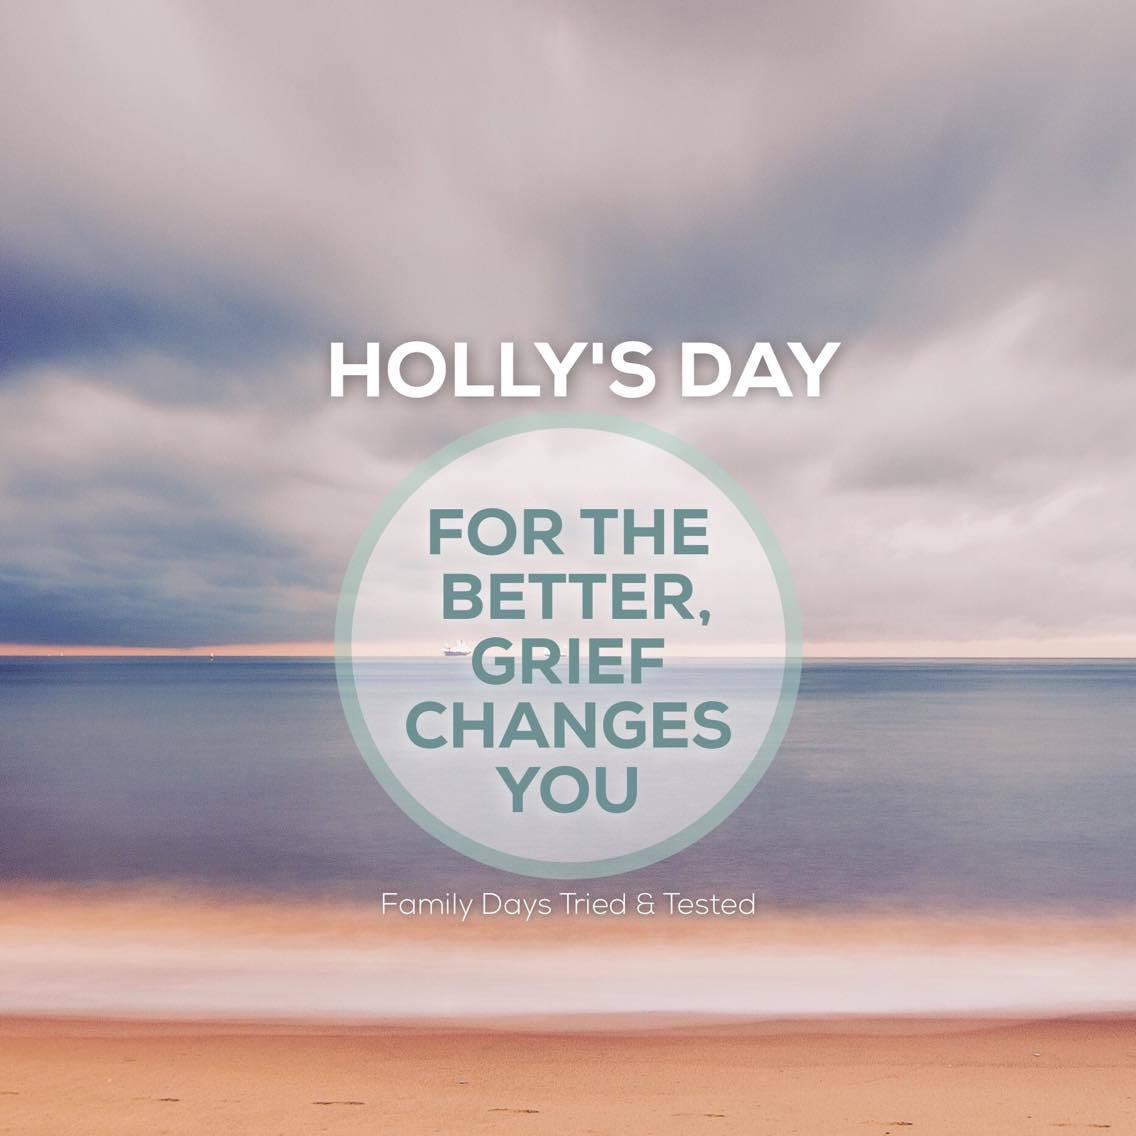 Holly's Day